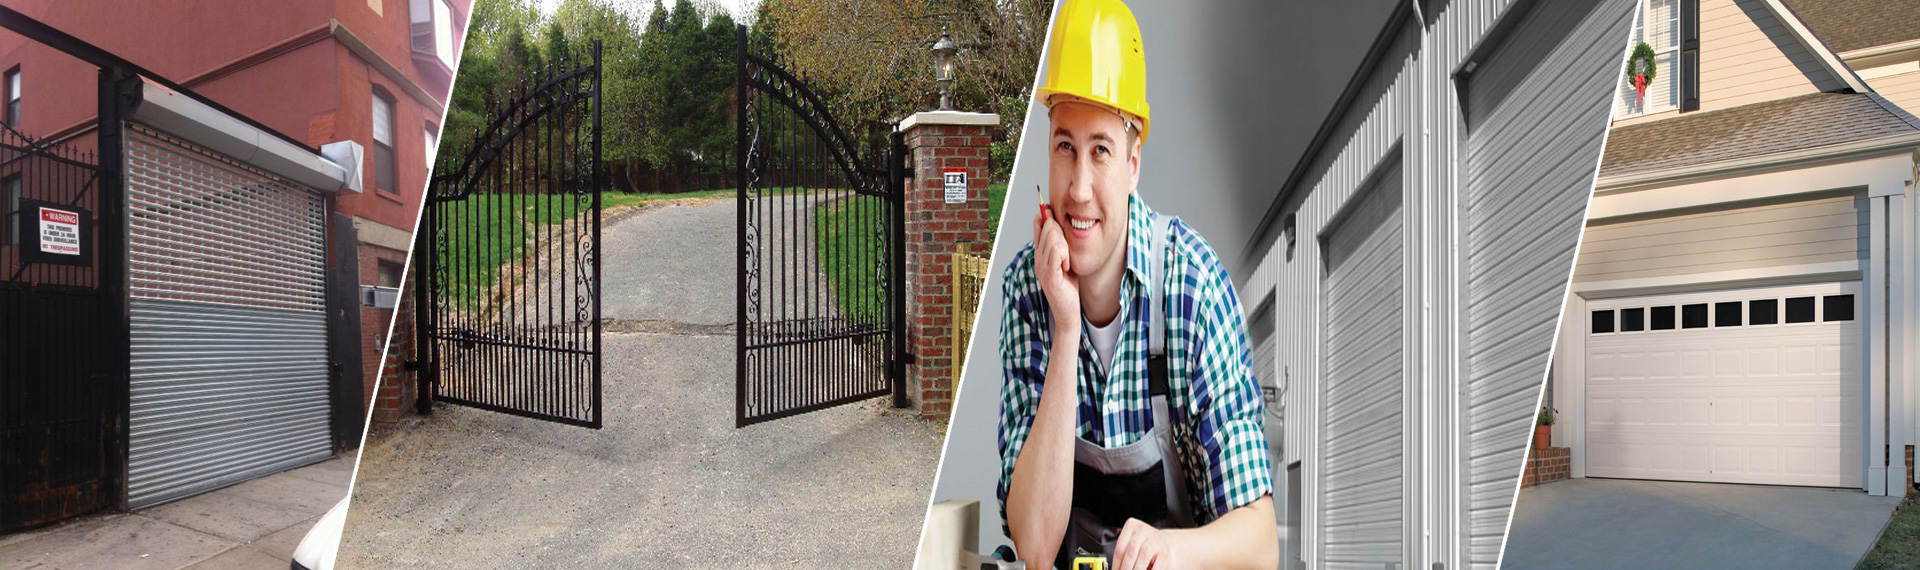 Roll Up Gates Repair Sunset Park NY